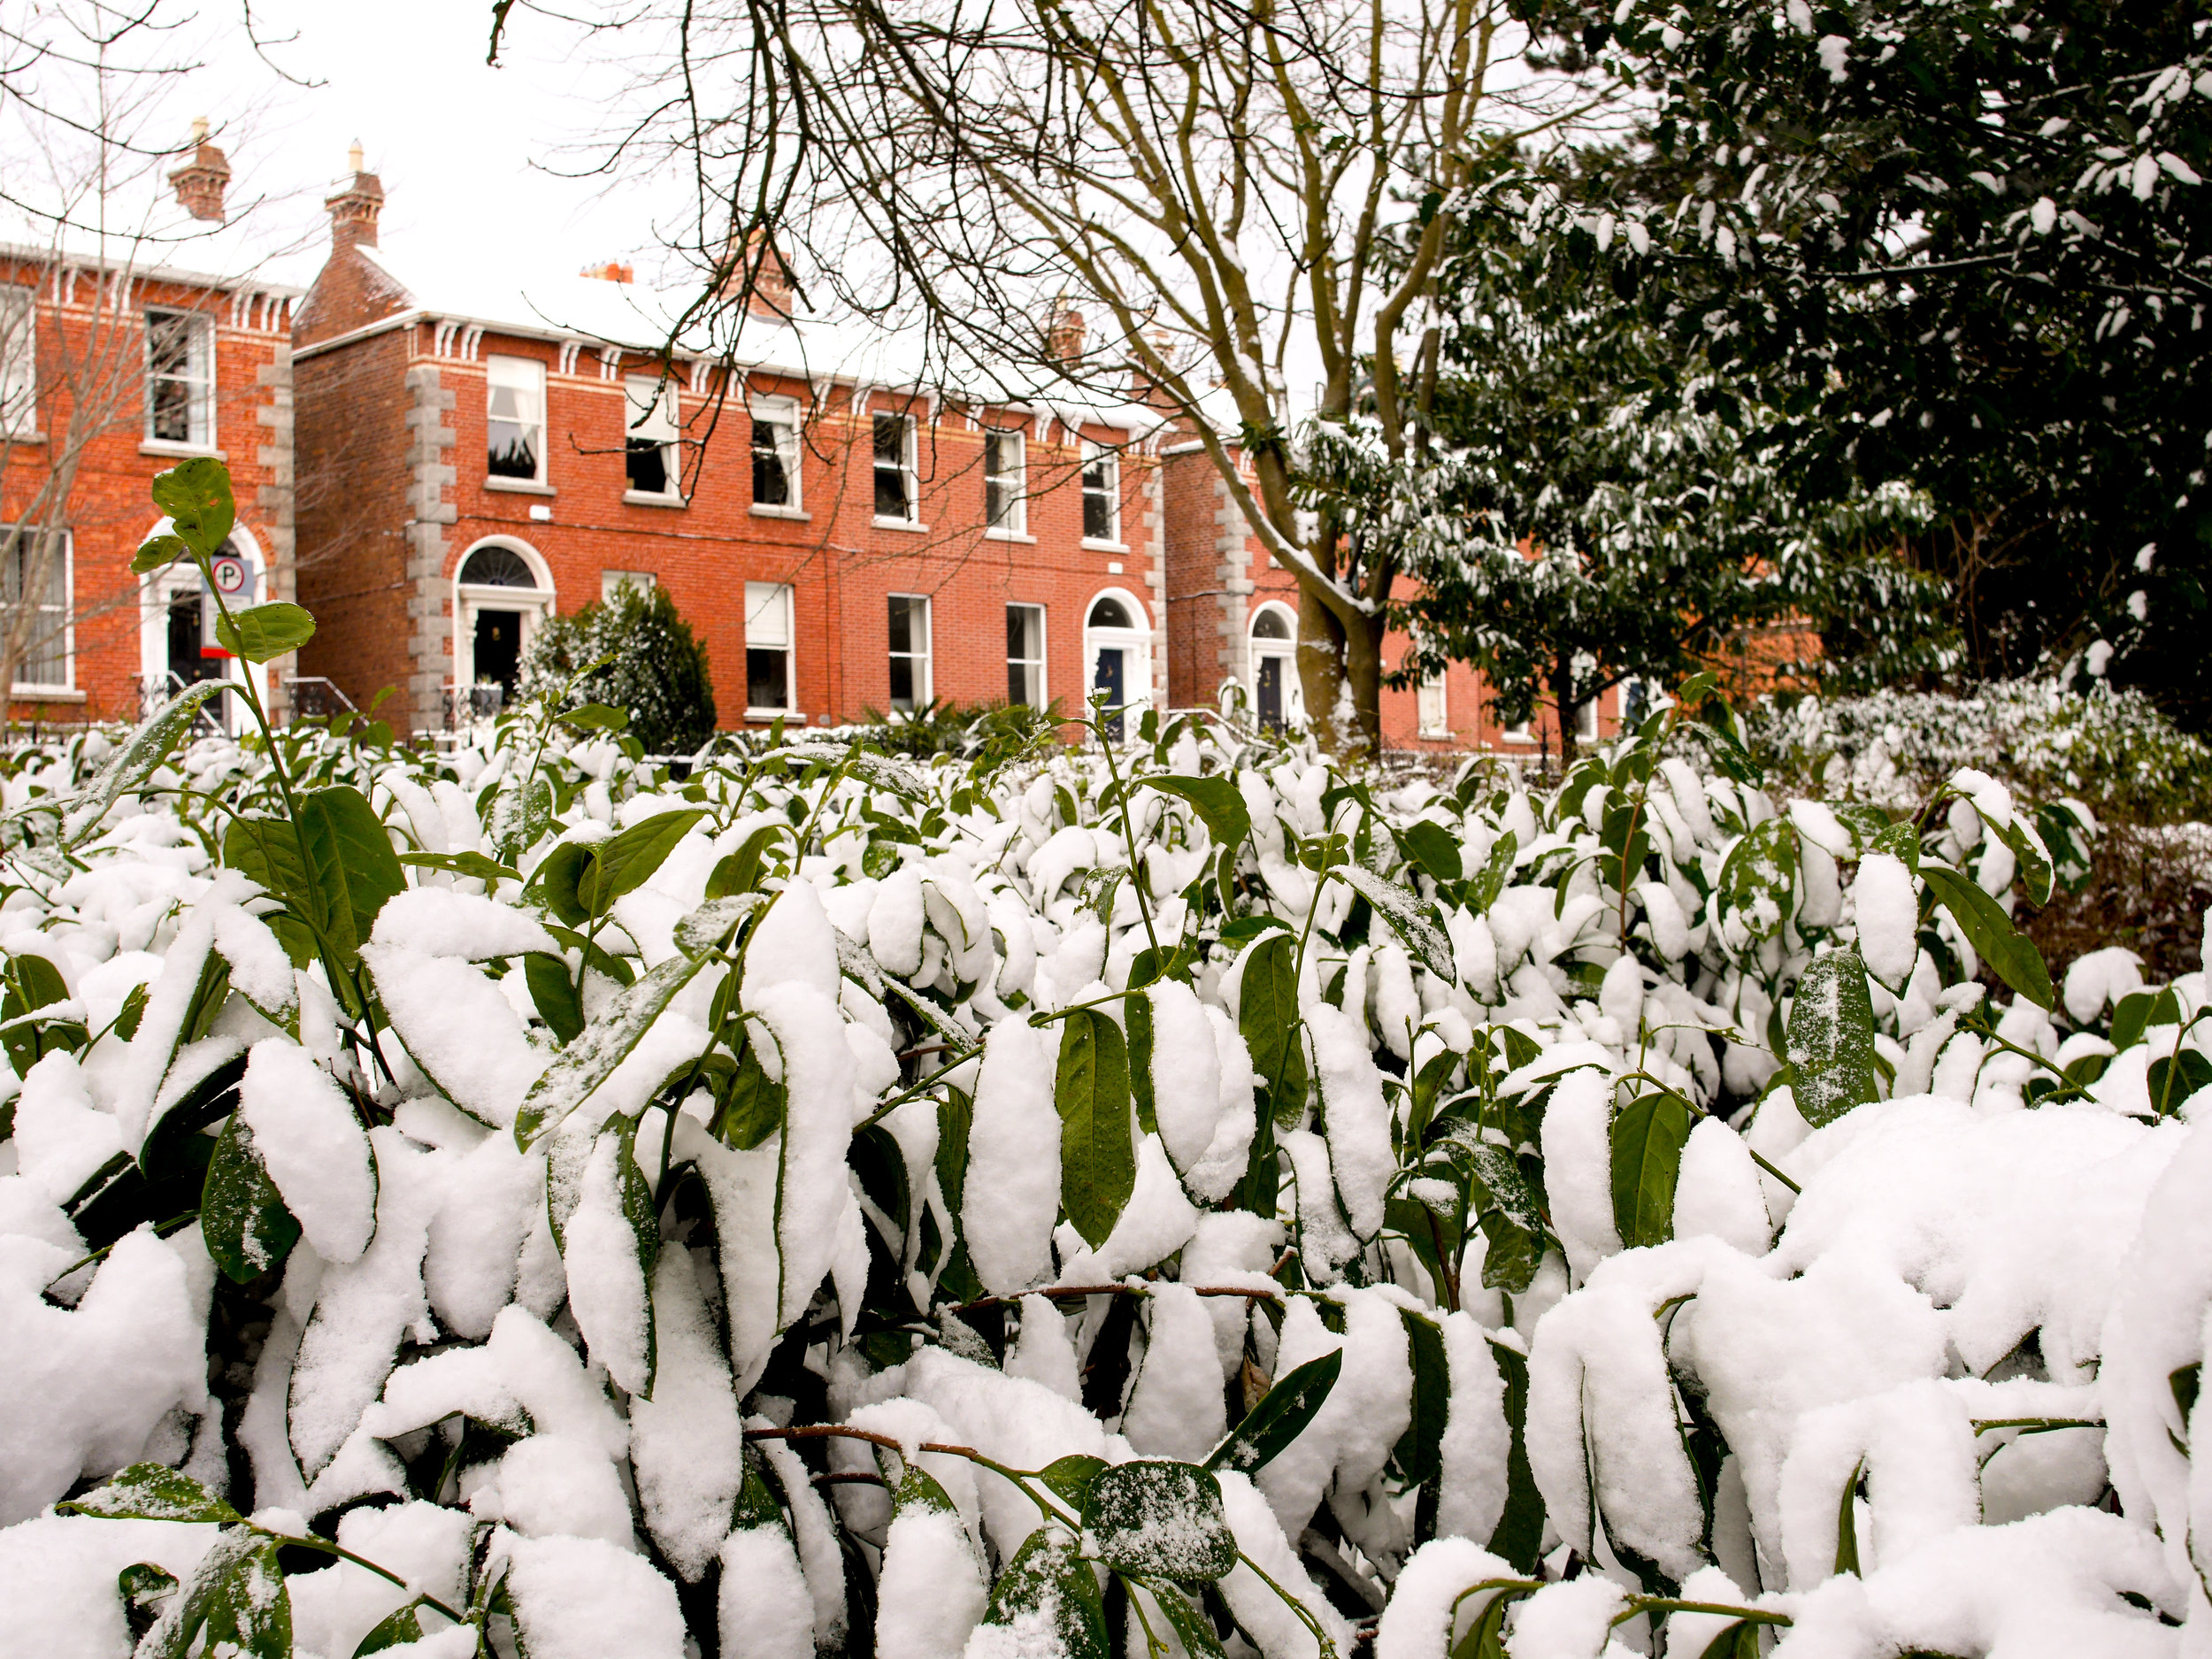 snow covered plants in Dublin, Ireland